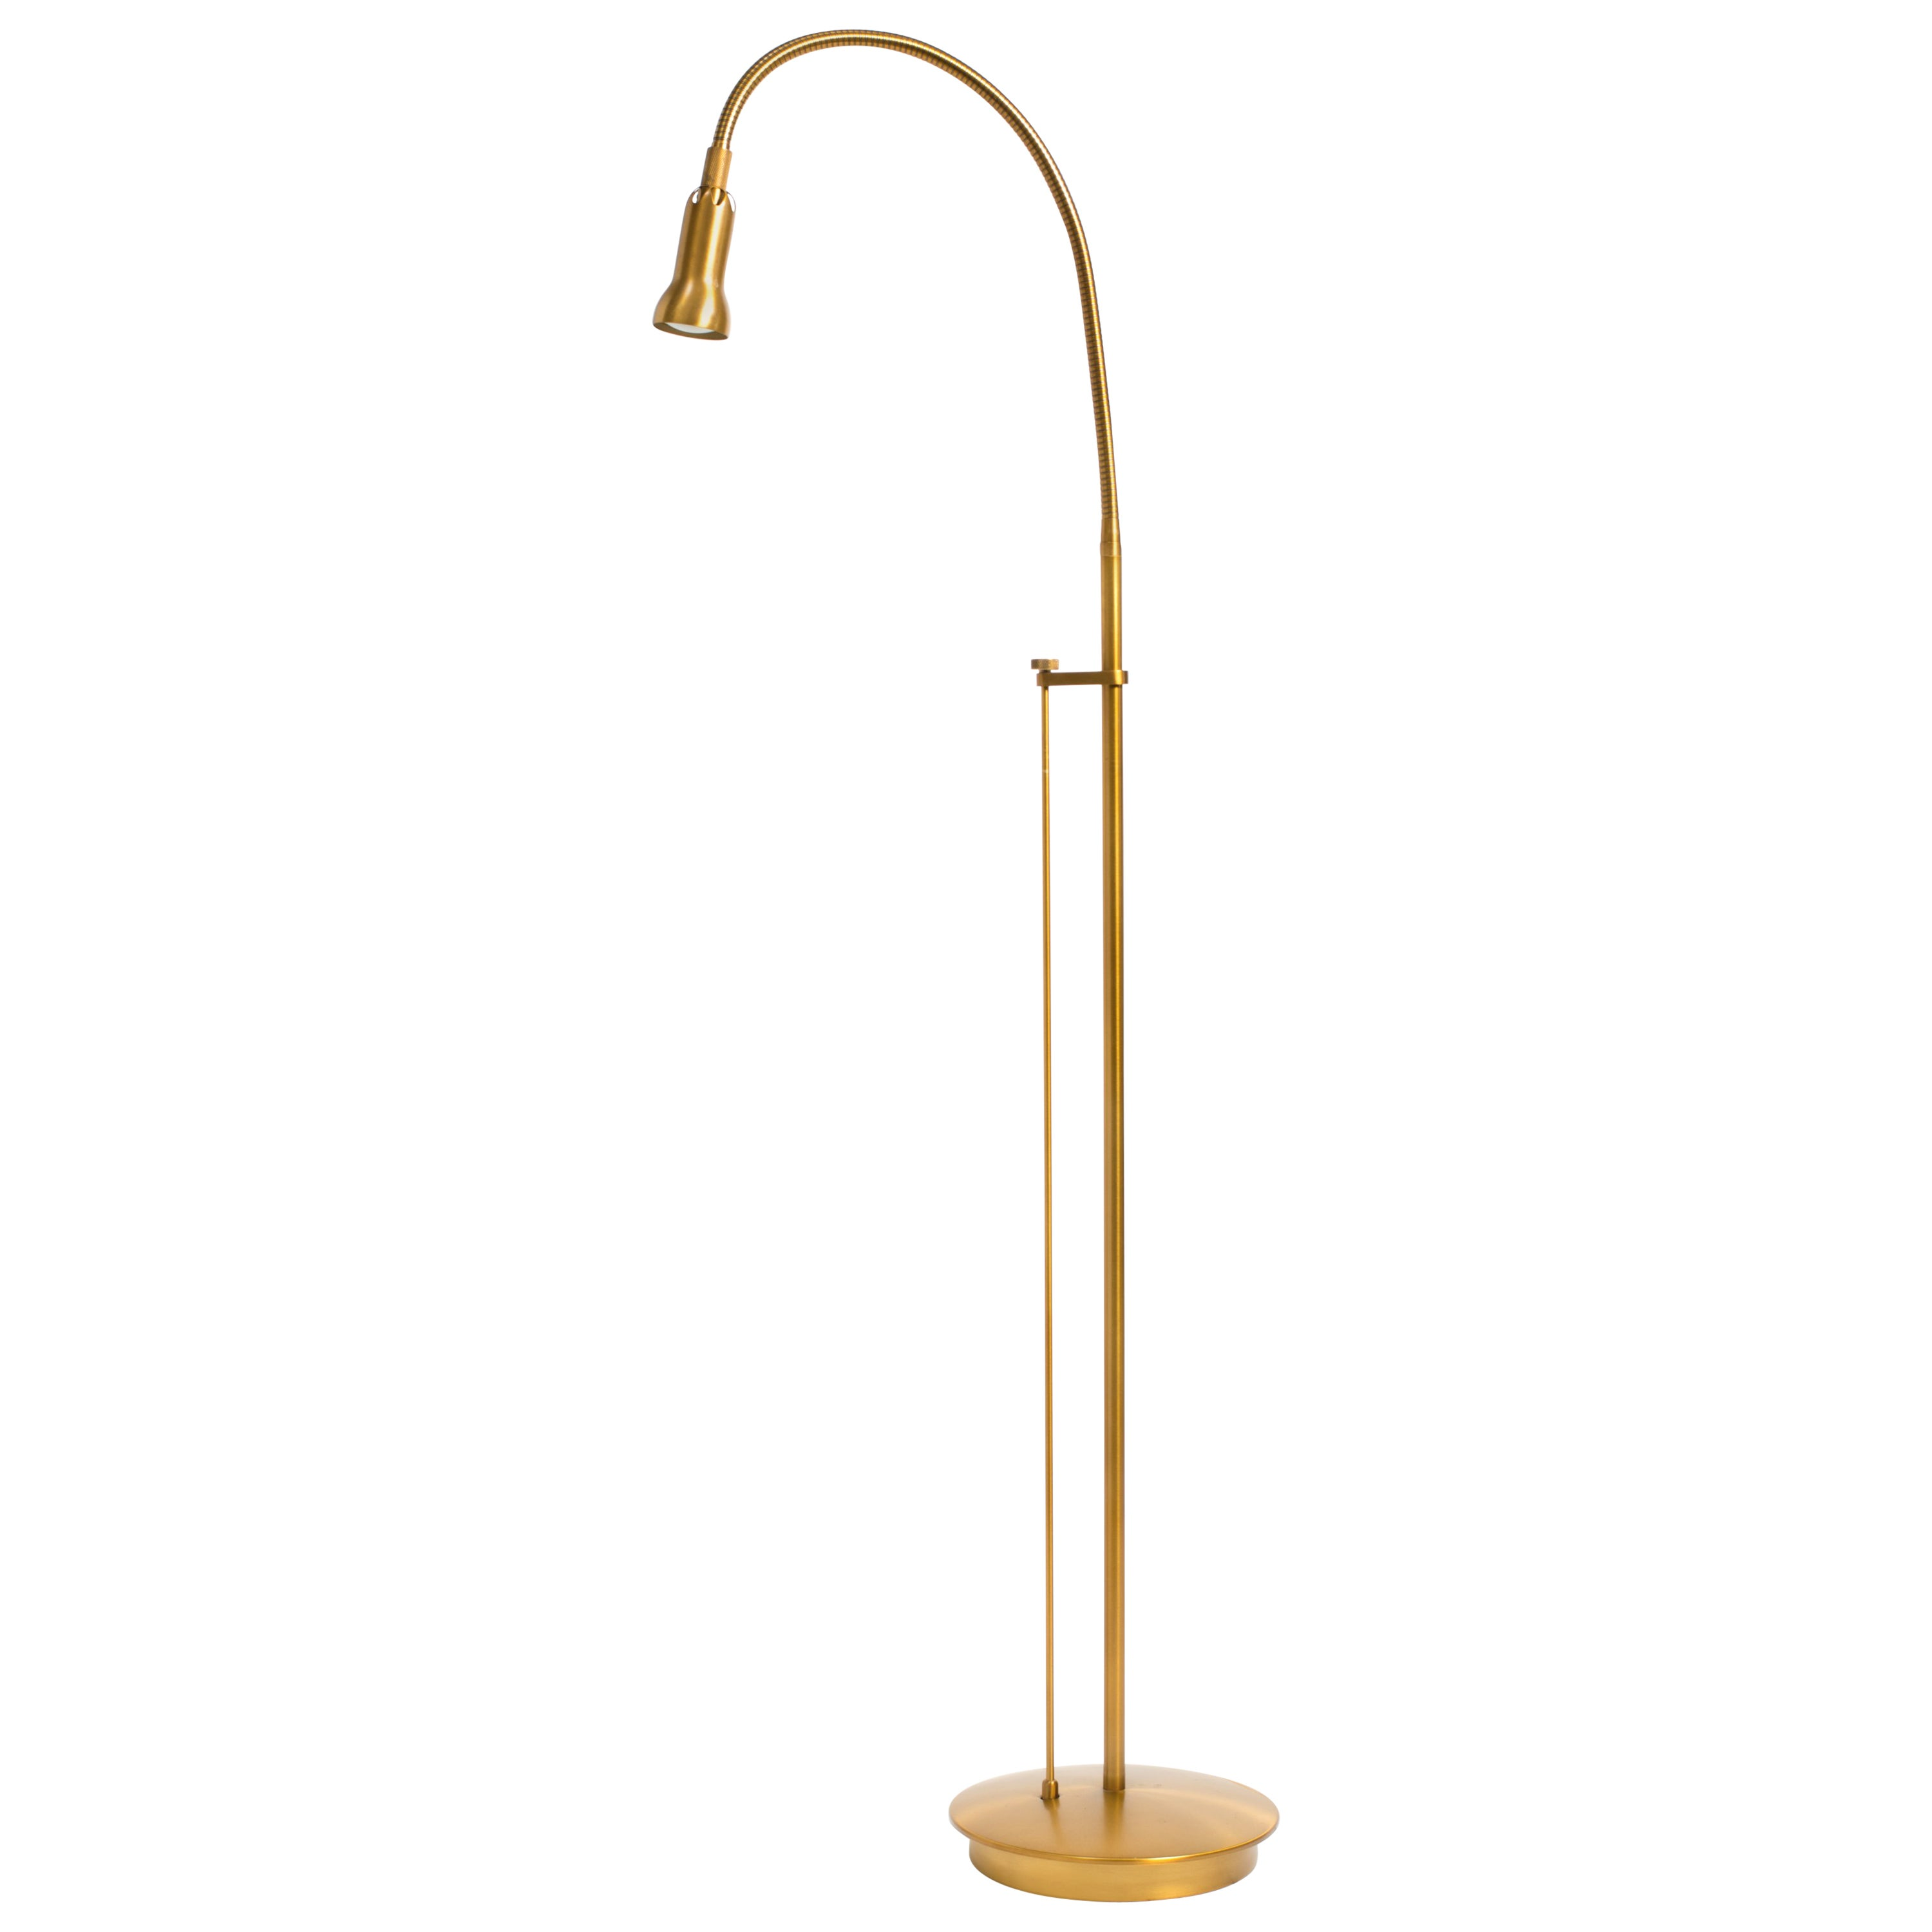 Brass gooseneck floor lamp for sale at 1stdibs